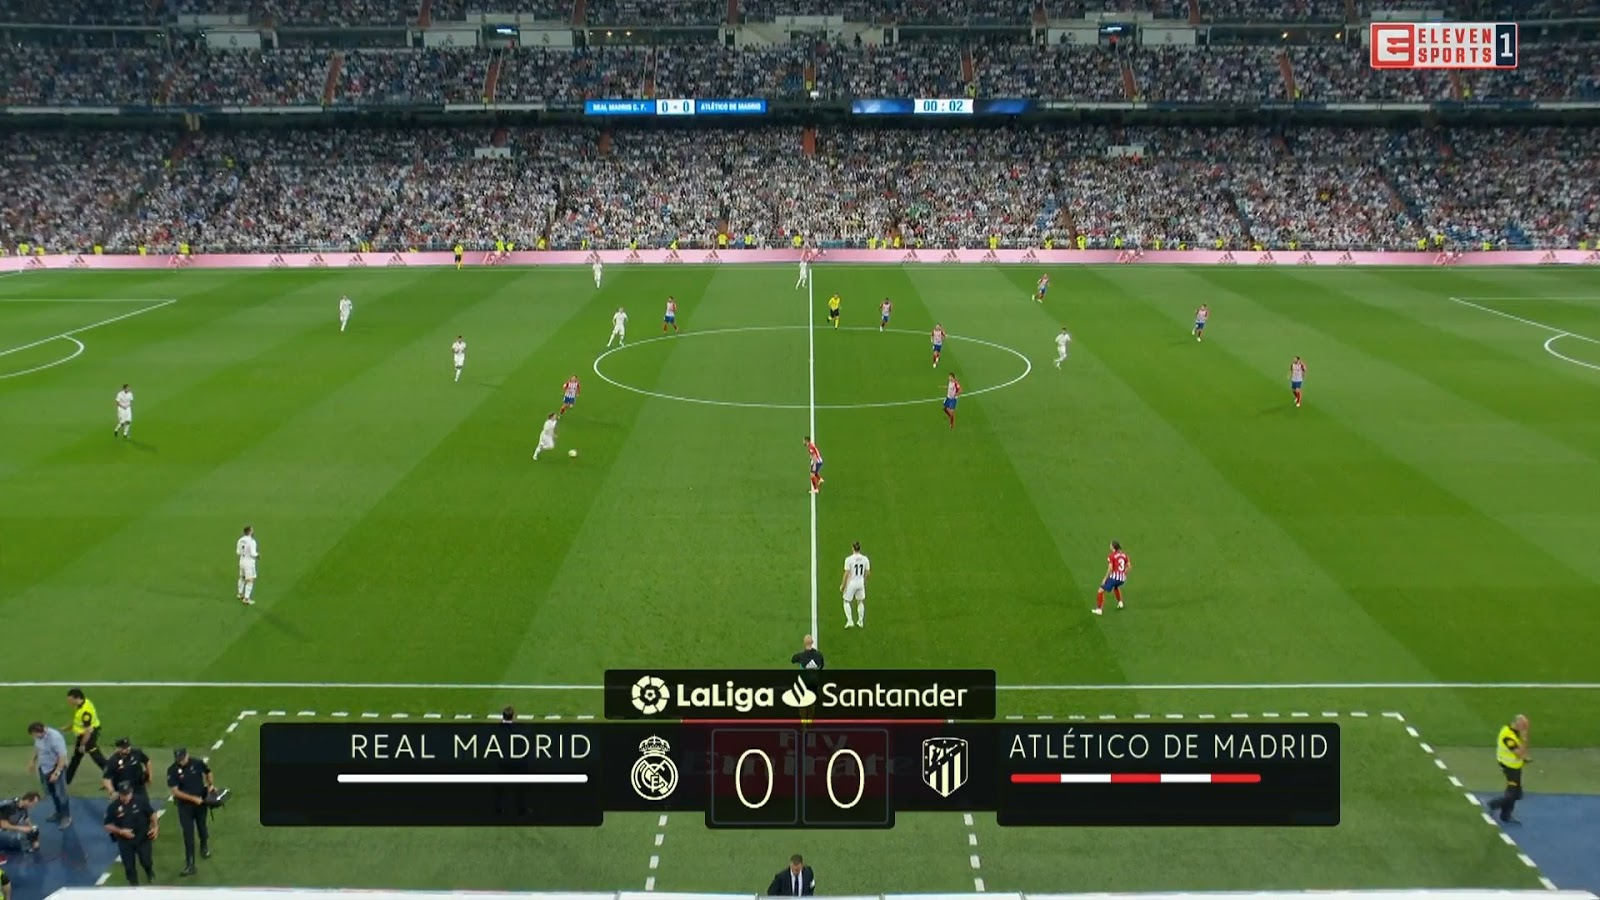 La Liga 18/19 - Matchday 7 - Real Madrid vs Atlético Madrid - 29/09/2018